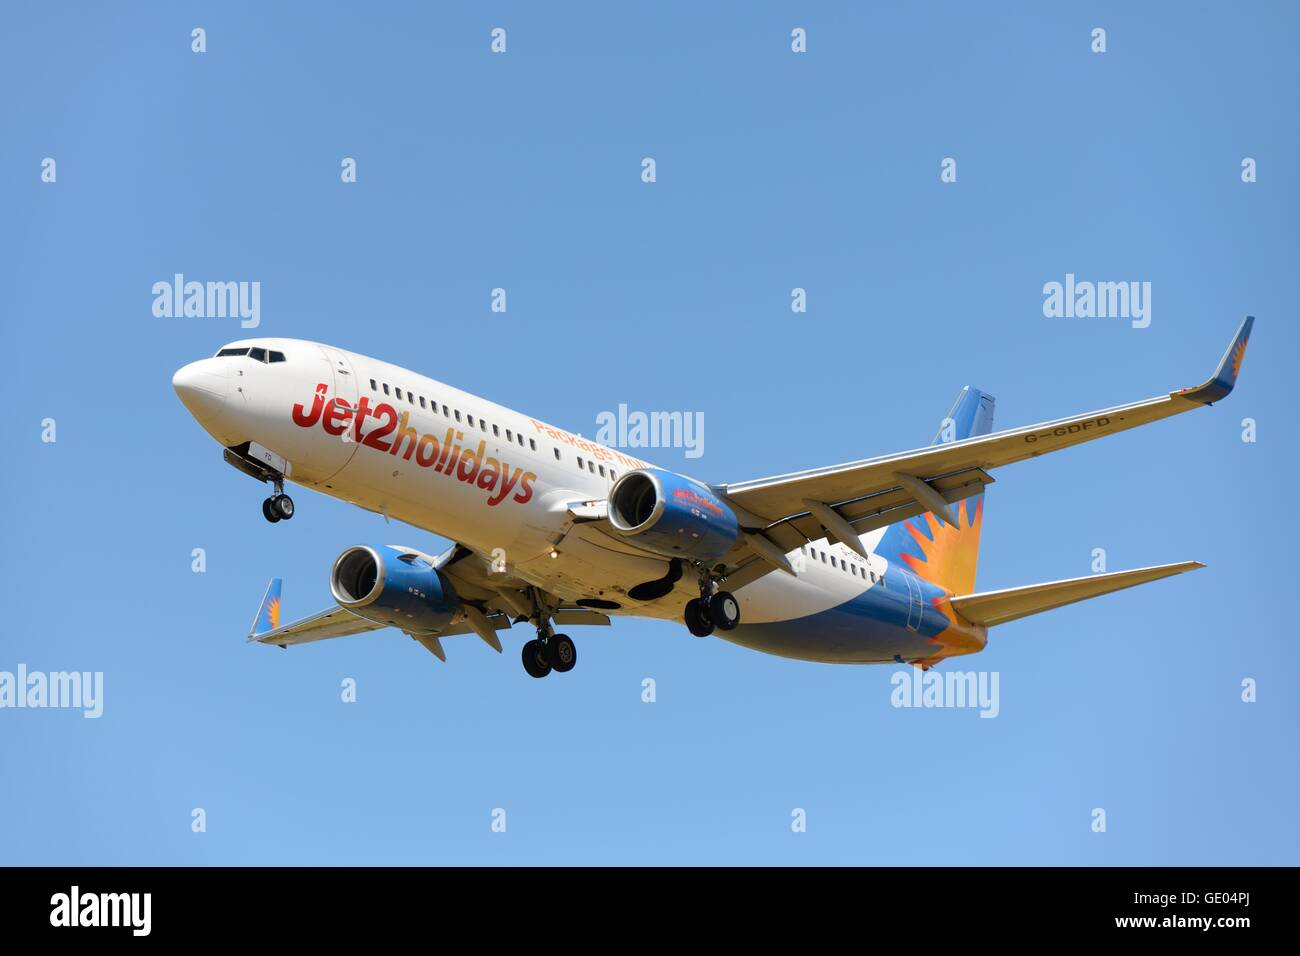 A Jet 2 Holidays aircraft on final approach to airport in Glasgow, Scotland, UK - Stock Image